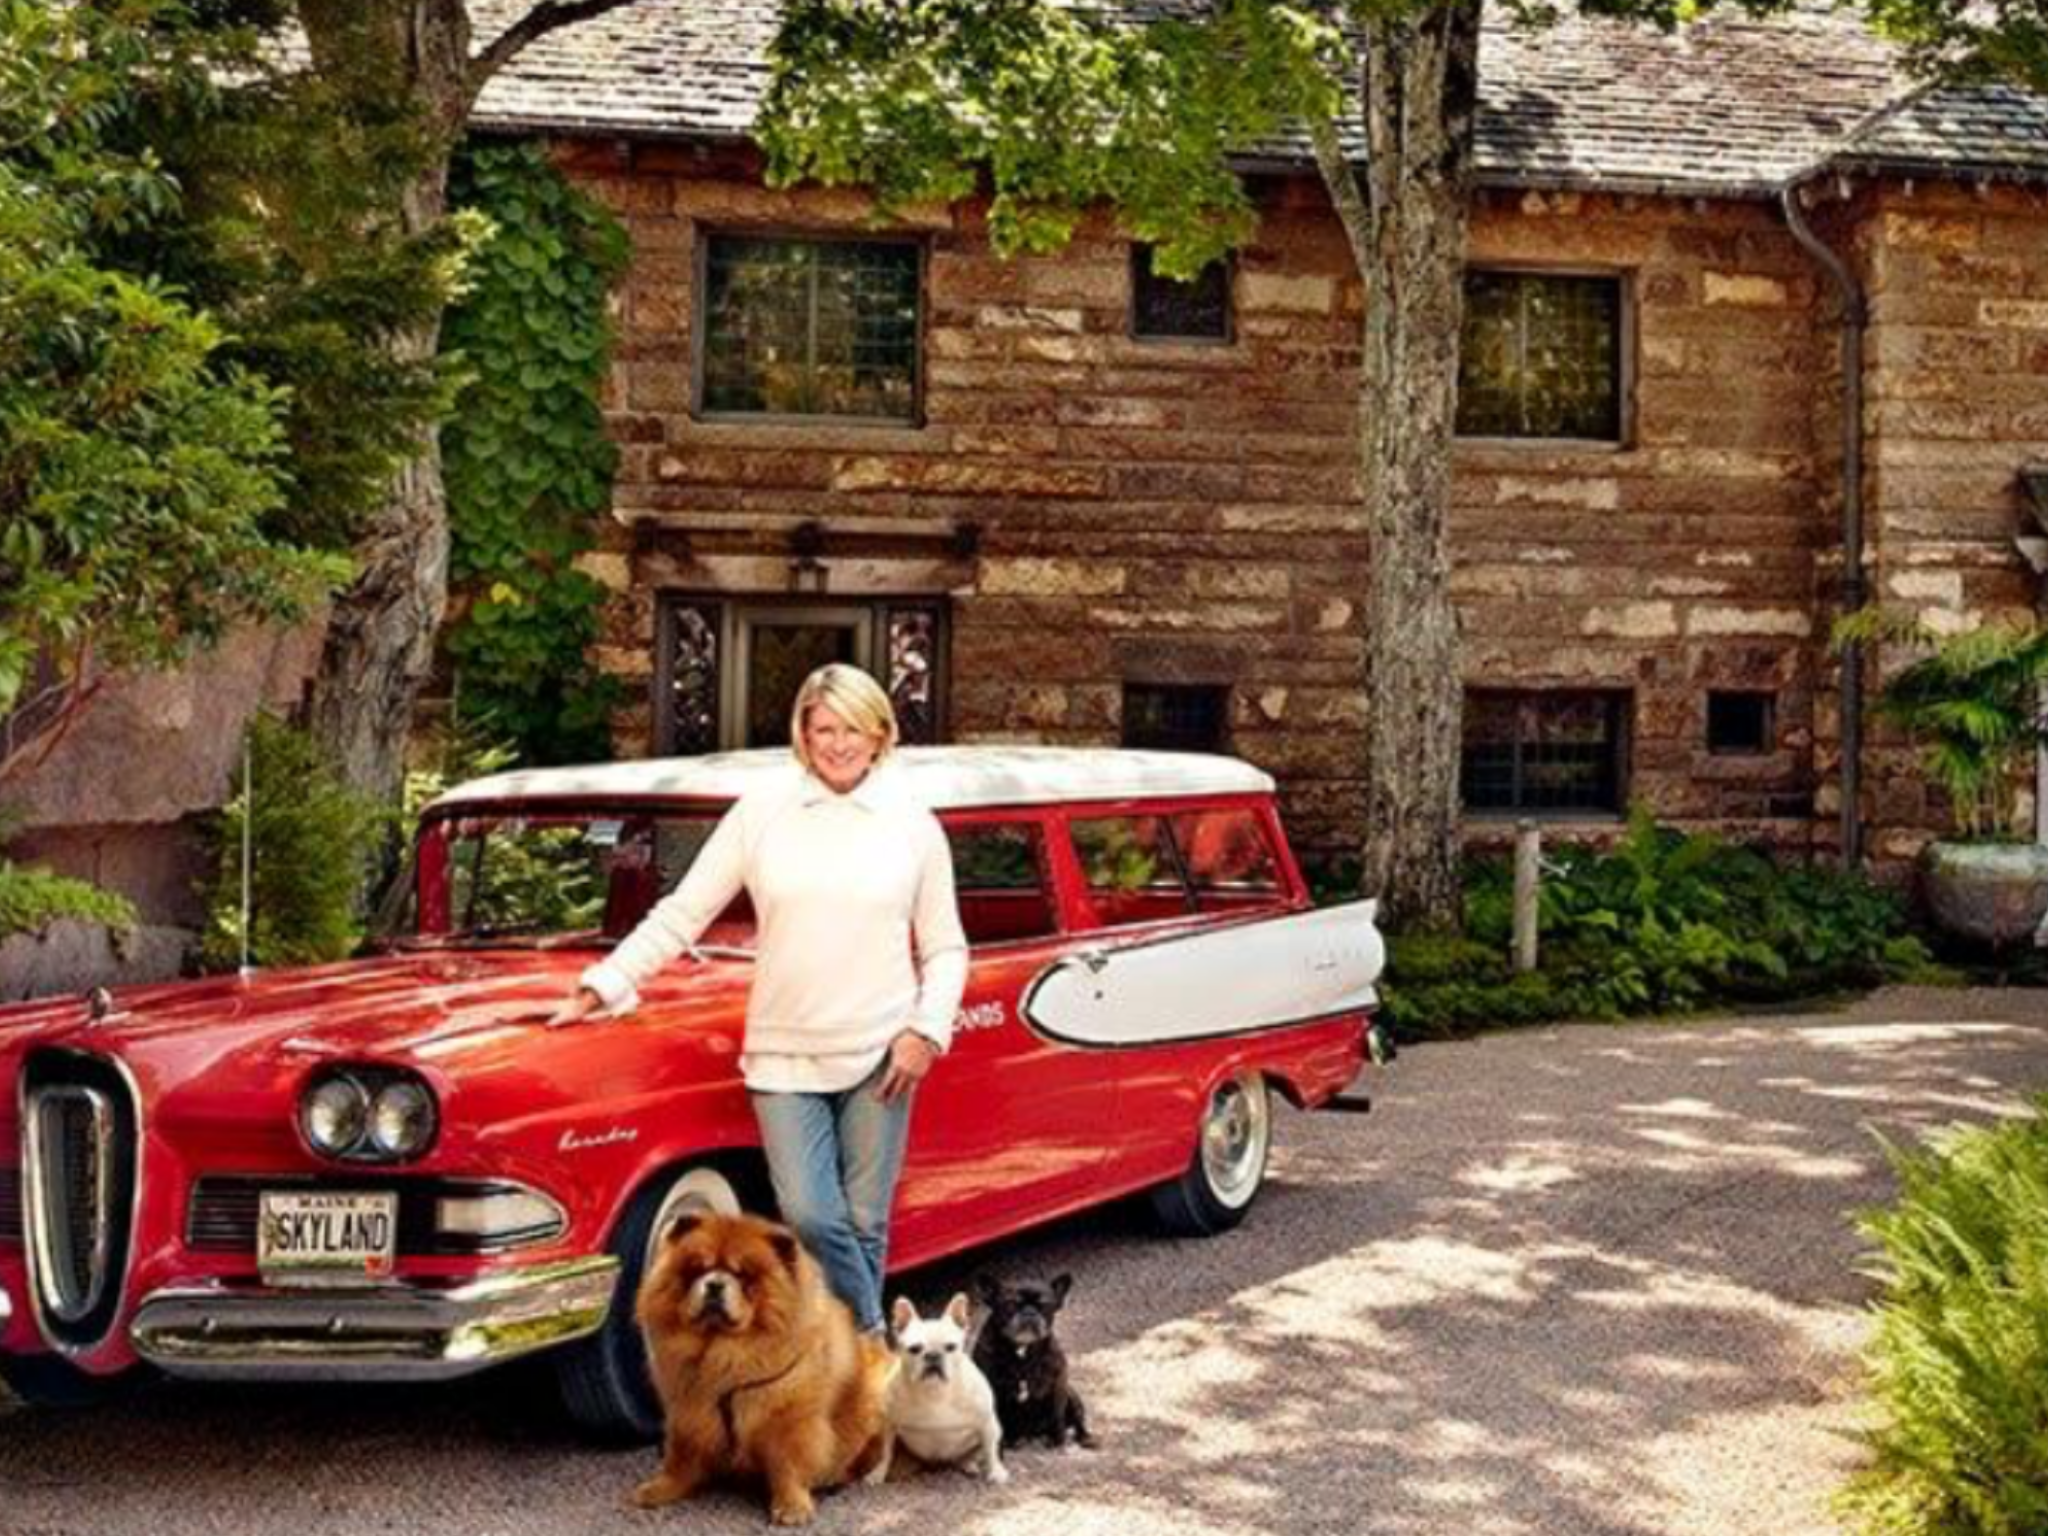 Martha Stewart Her Maine Estate With Ford Edsel Ranger Chow Chow And French Bulldogs Architectural Digest Architecture Edsel